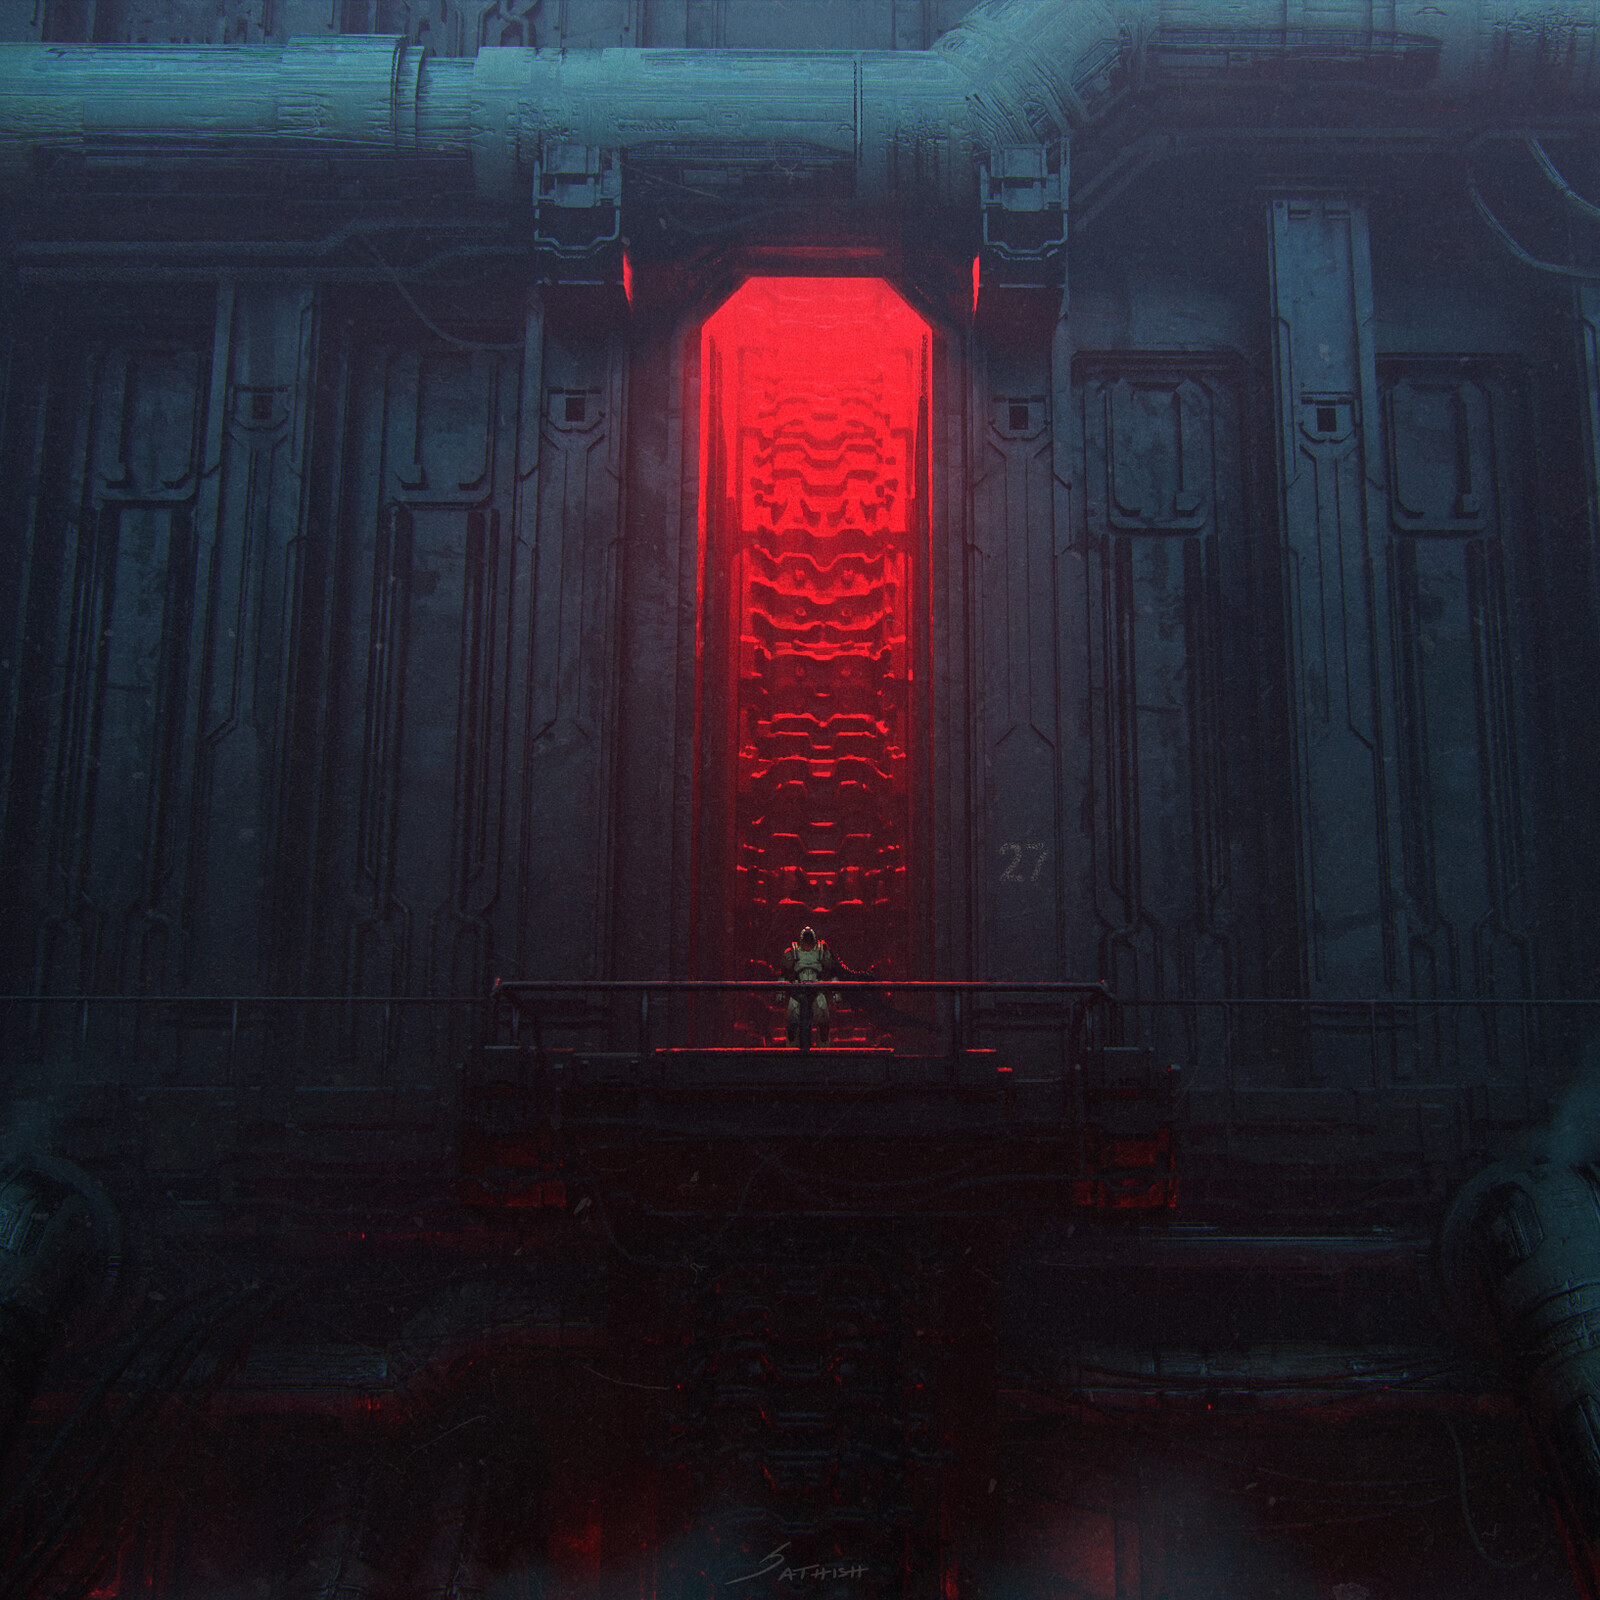 Daily 18 - 2021